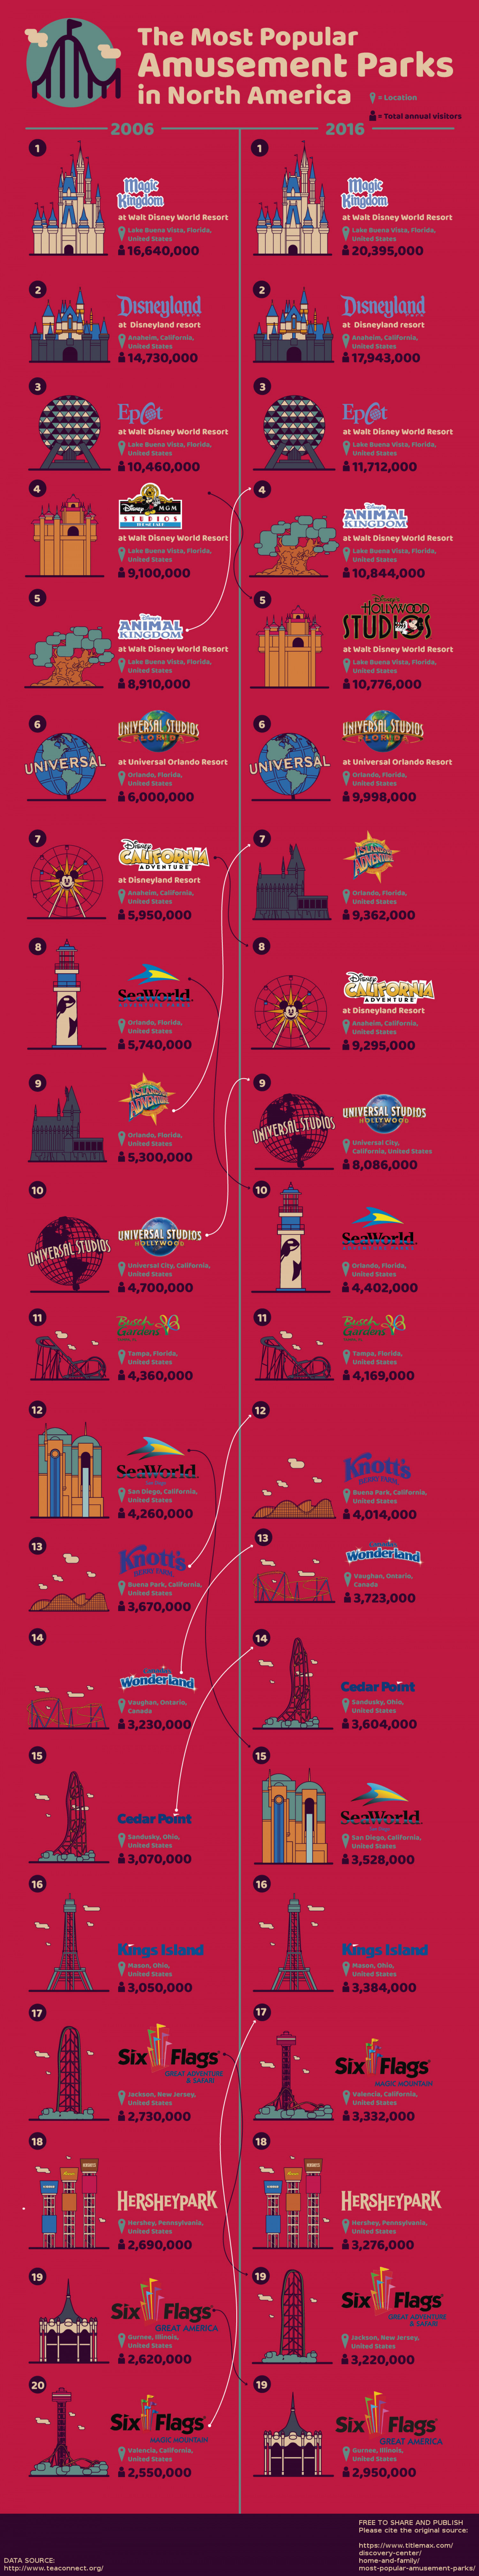 The Most Popular Amusement Parks in North America (By Visitors over a Decade) Infographic